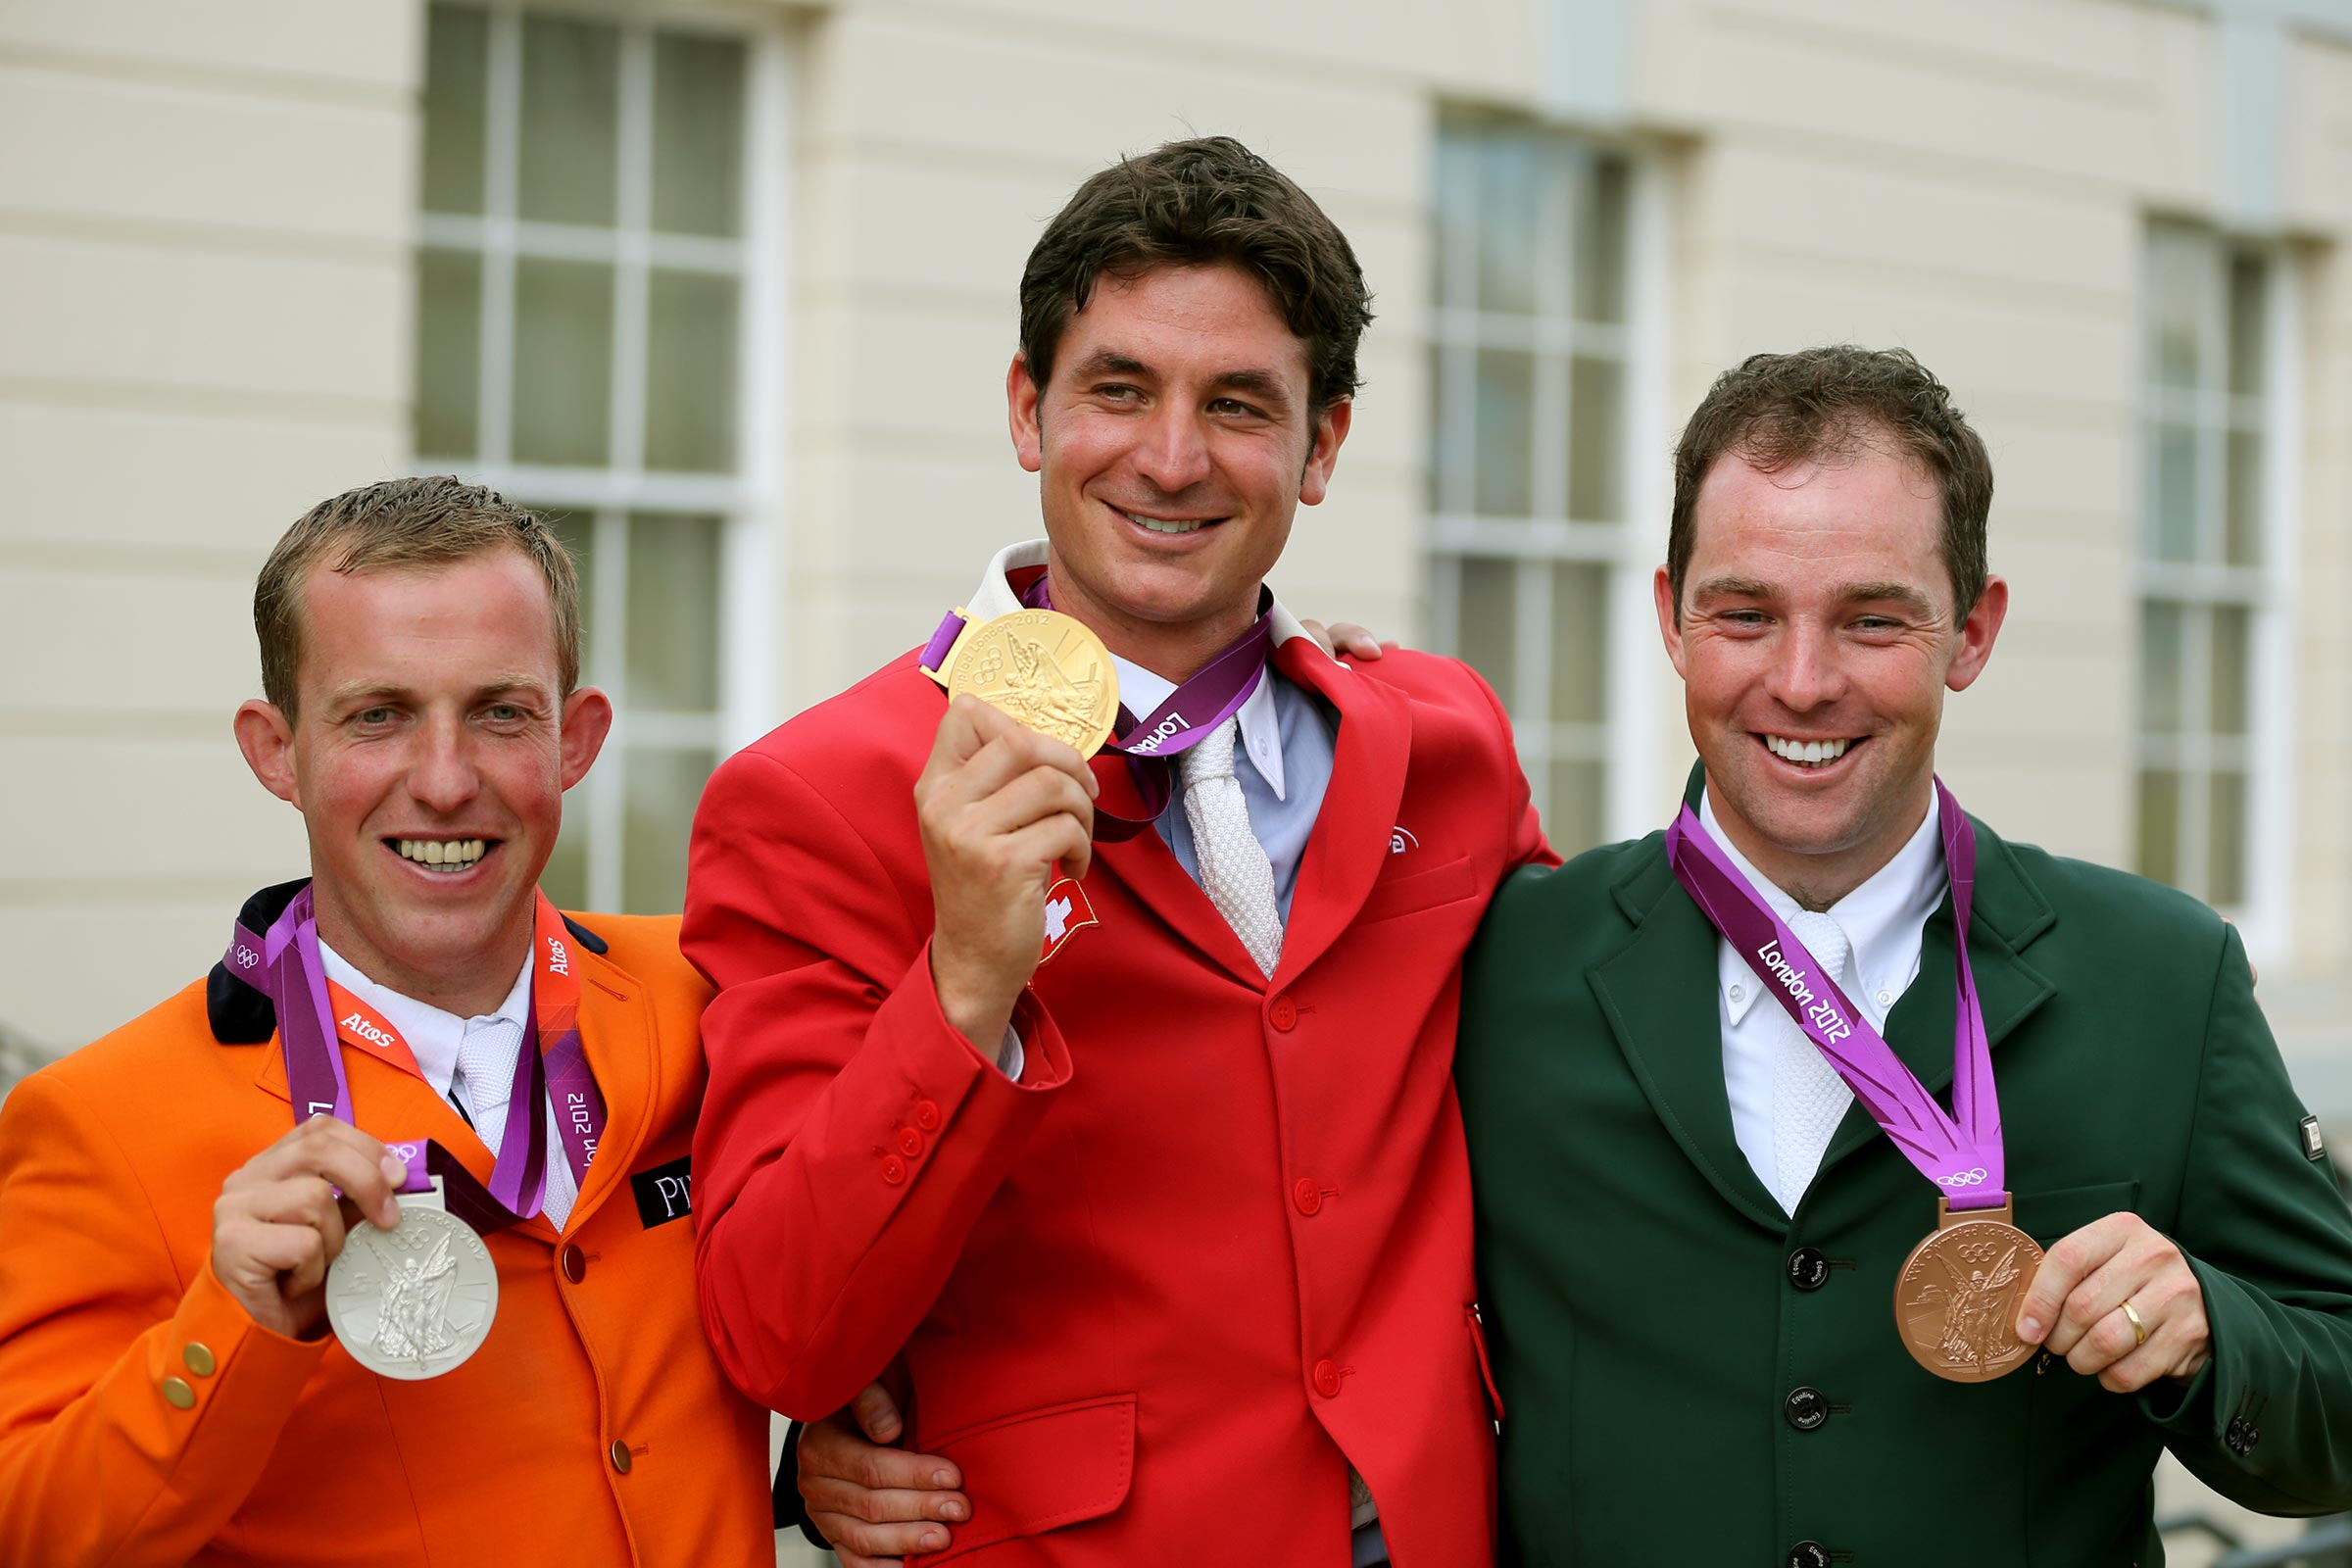 London OS 120807 Gerco Schröder silvermedal, Steve Guerdat goldmedal and Cian O´Connor bronzmedal. Photo: Roland Thunholm Code: 718 35 . OS i London 2012